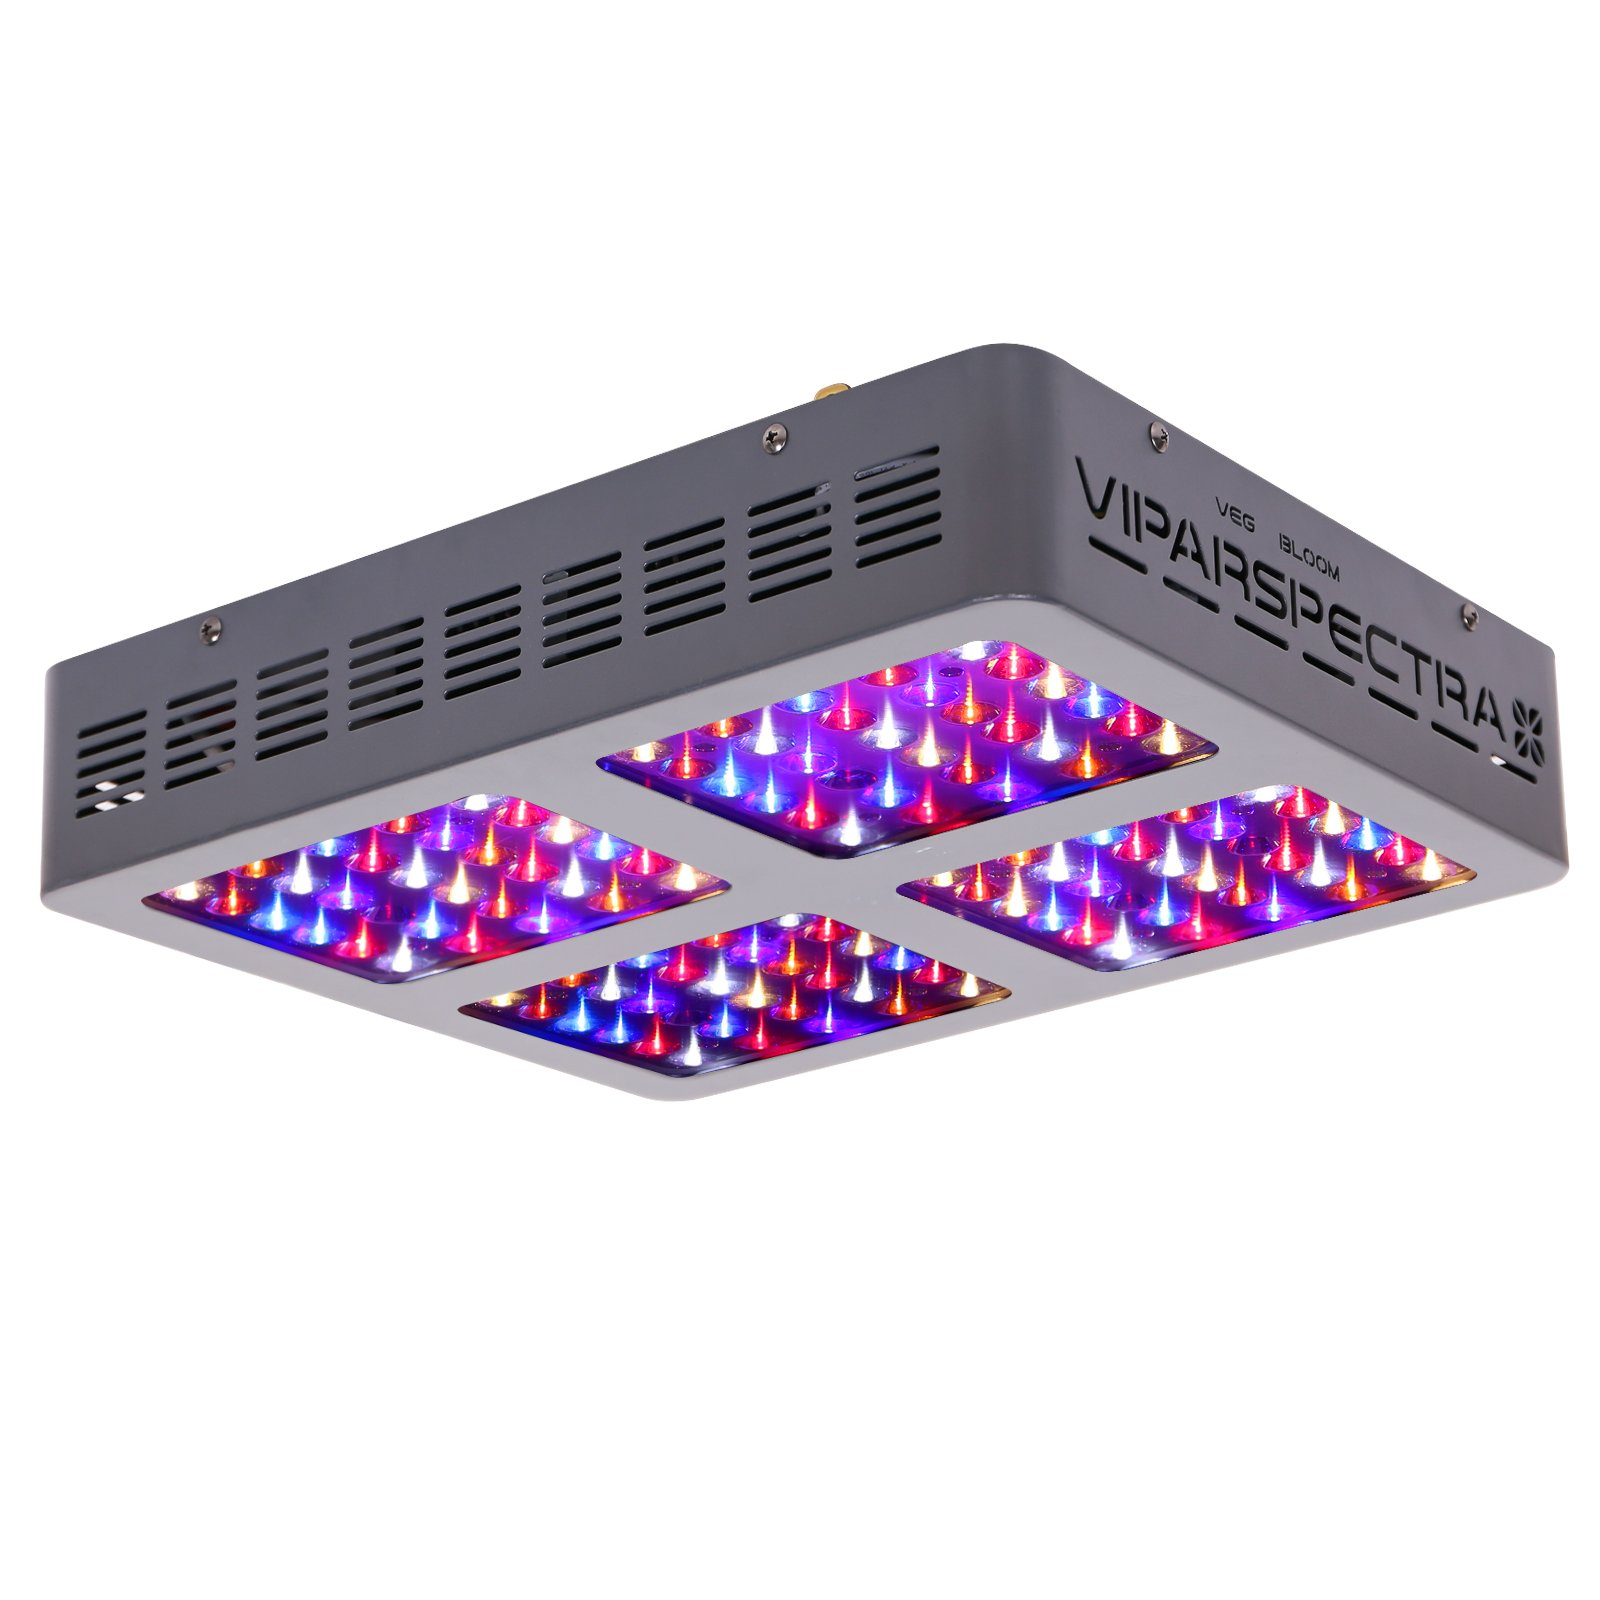 VIPARSPECTRA Reflector-Series 600W LED Grow Light Full Spectrum for Indoor Plants Veg and Flower by VIPARSPECTRA